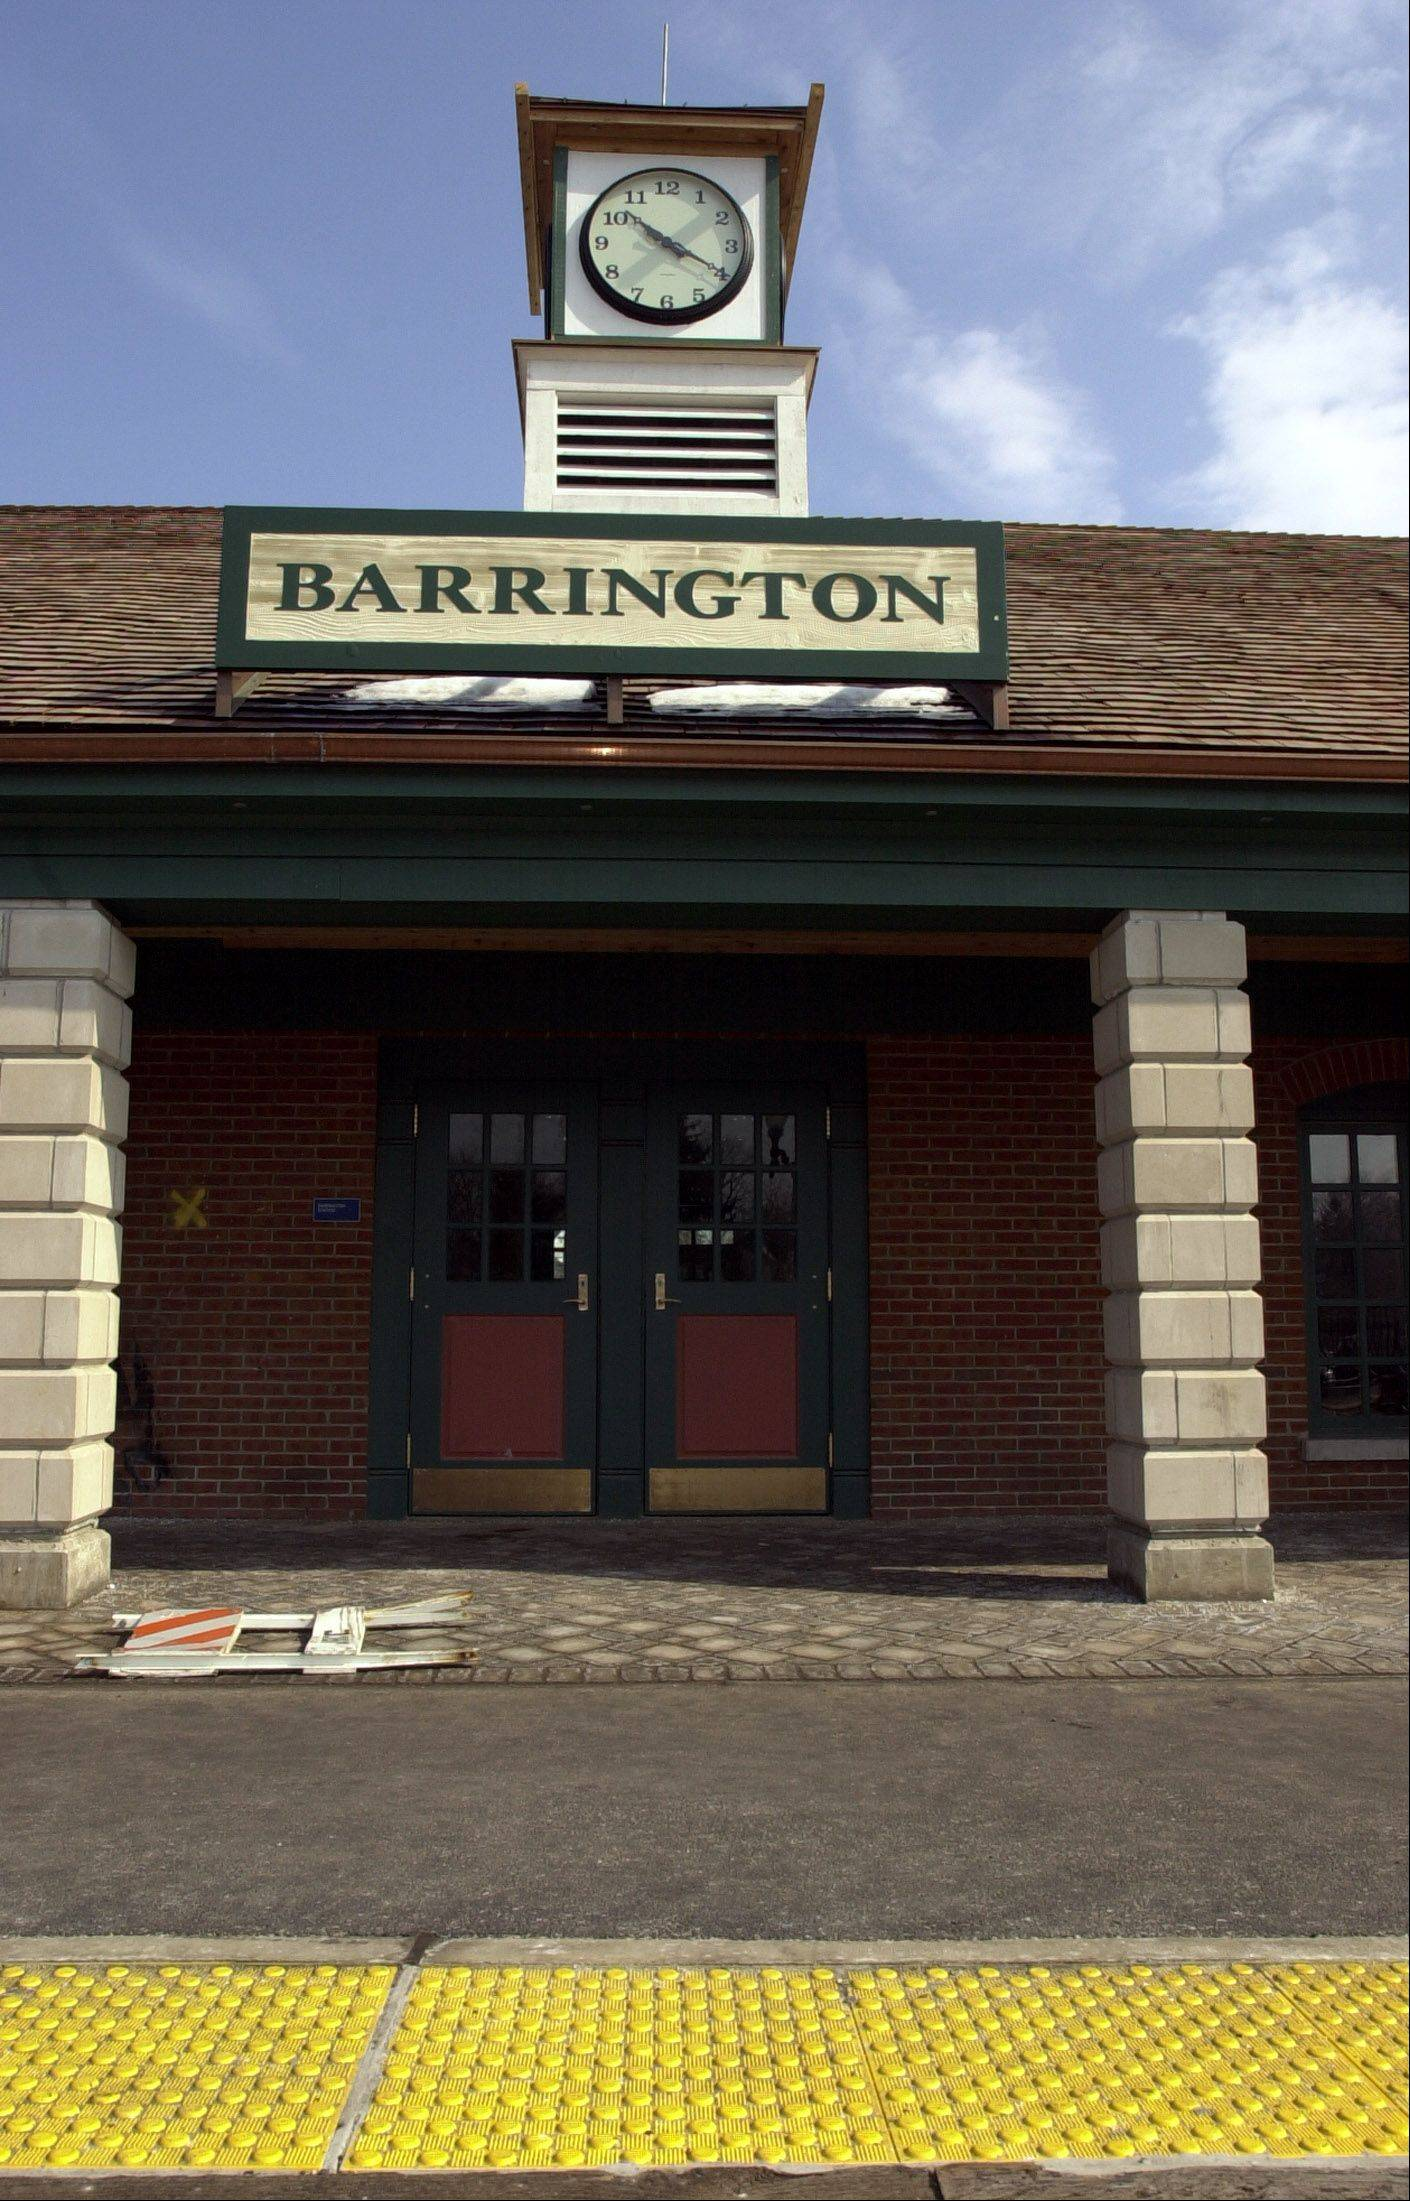 Barrington plans to spend about $120,000 later this year upgrading the exterior of its downtown train station. Planned work includes replacing bricks and worn pavement, improving landscaping and adding accessibility features for disabled commuters.